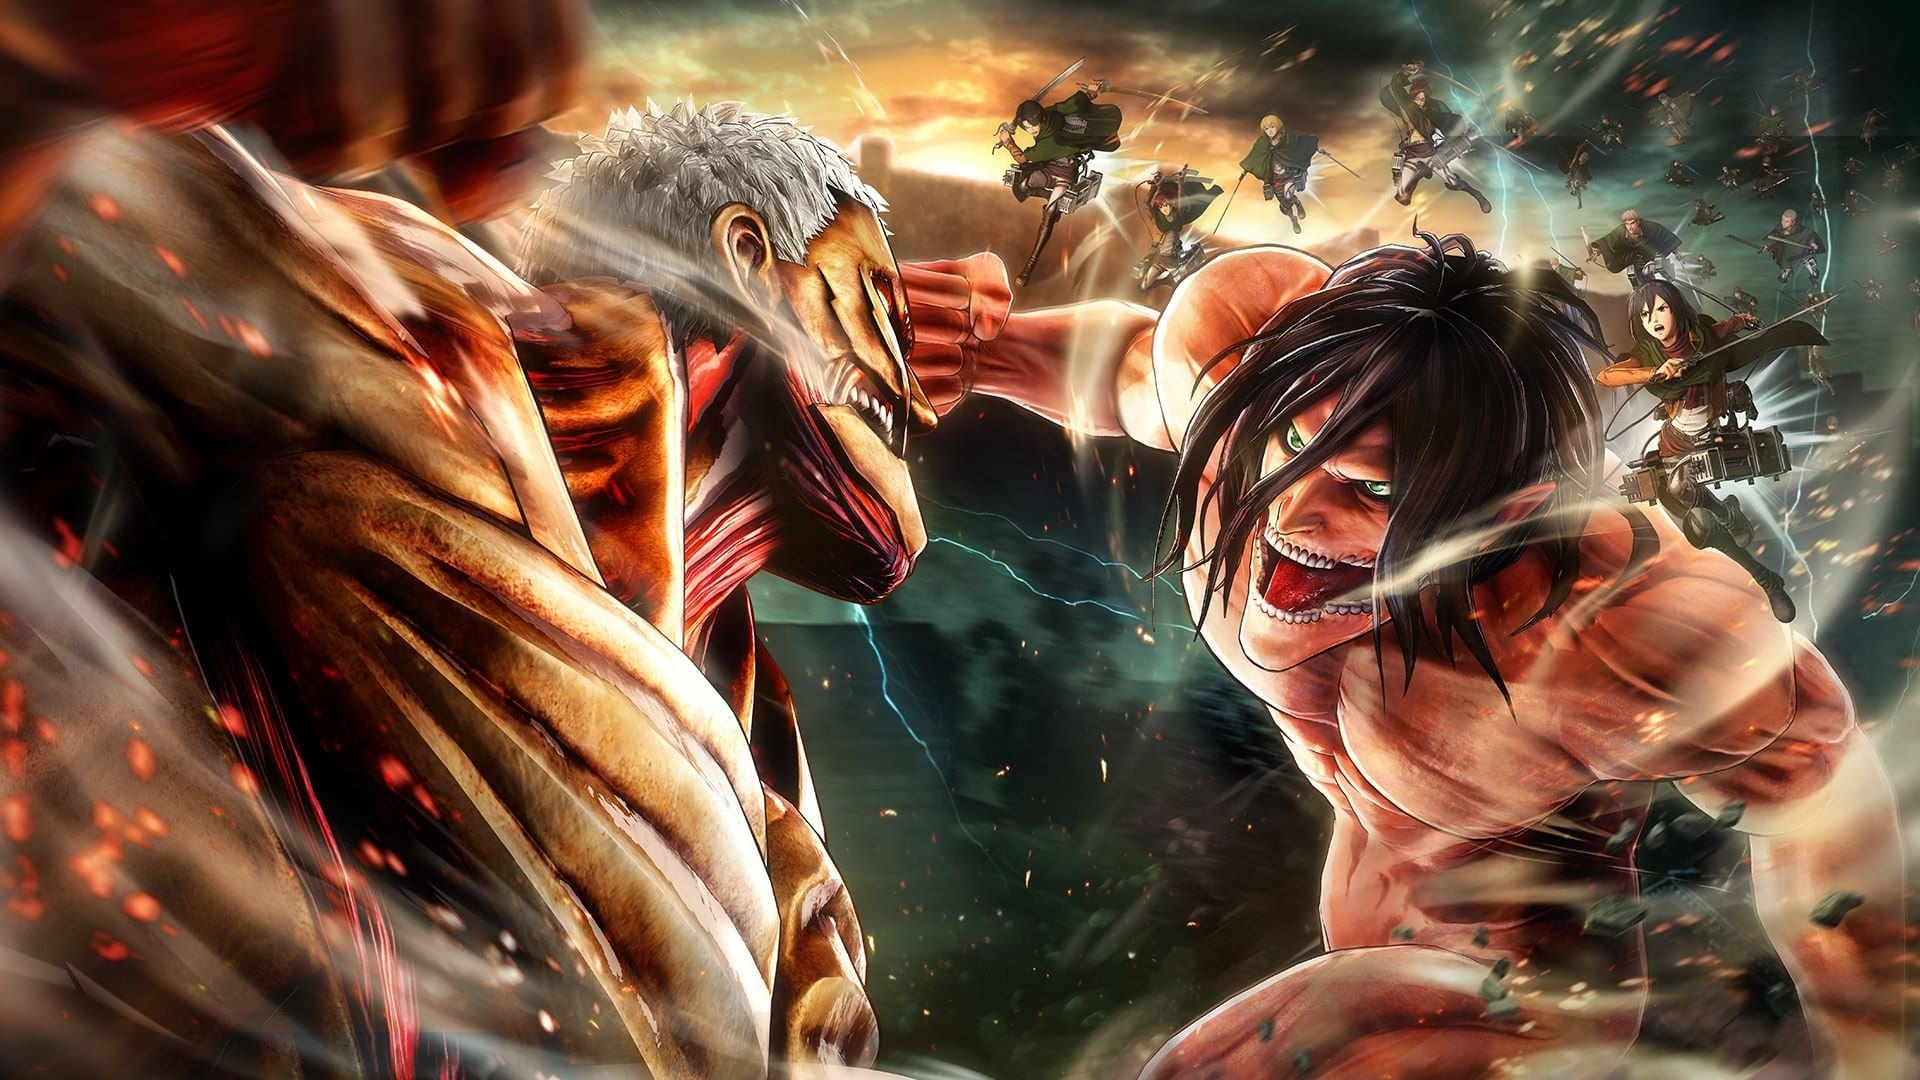 Attack on Titan Season Plot Spoilers and Manga Chapters